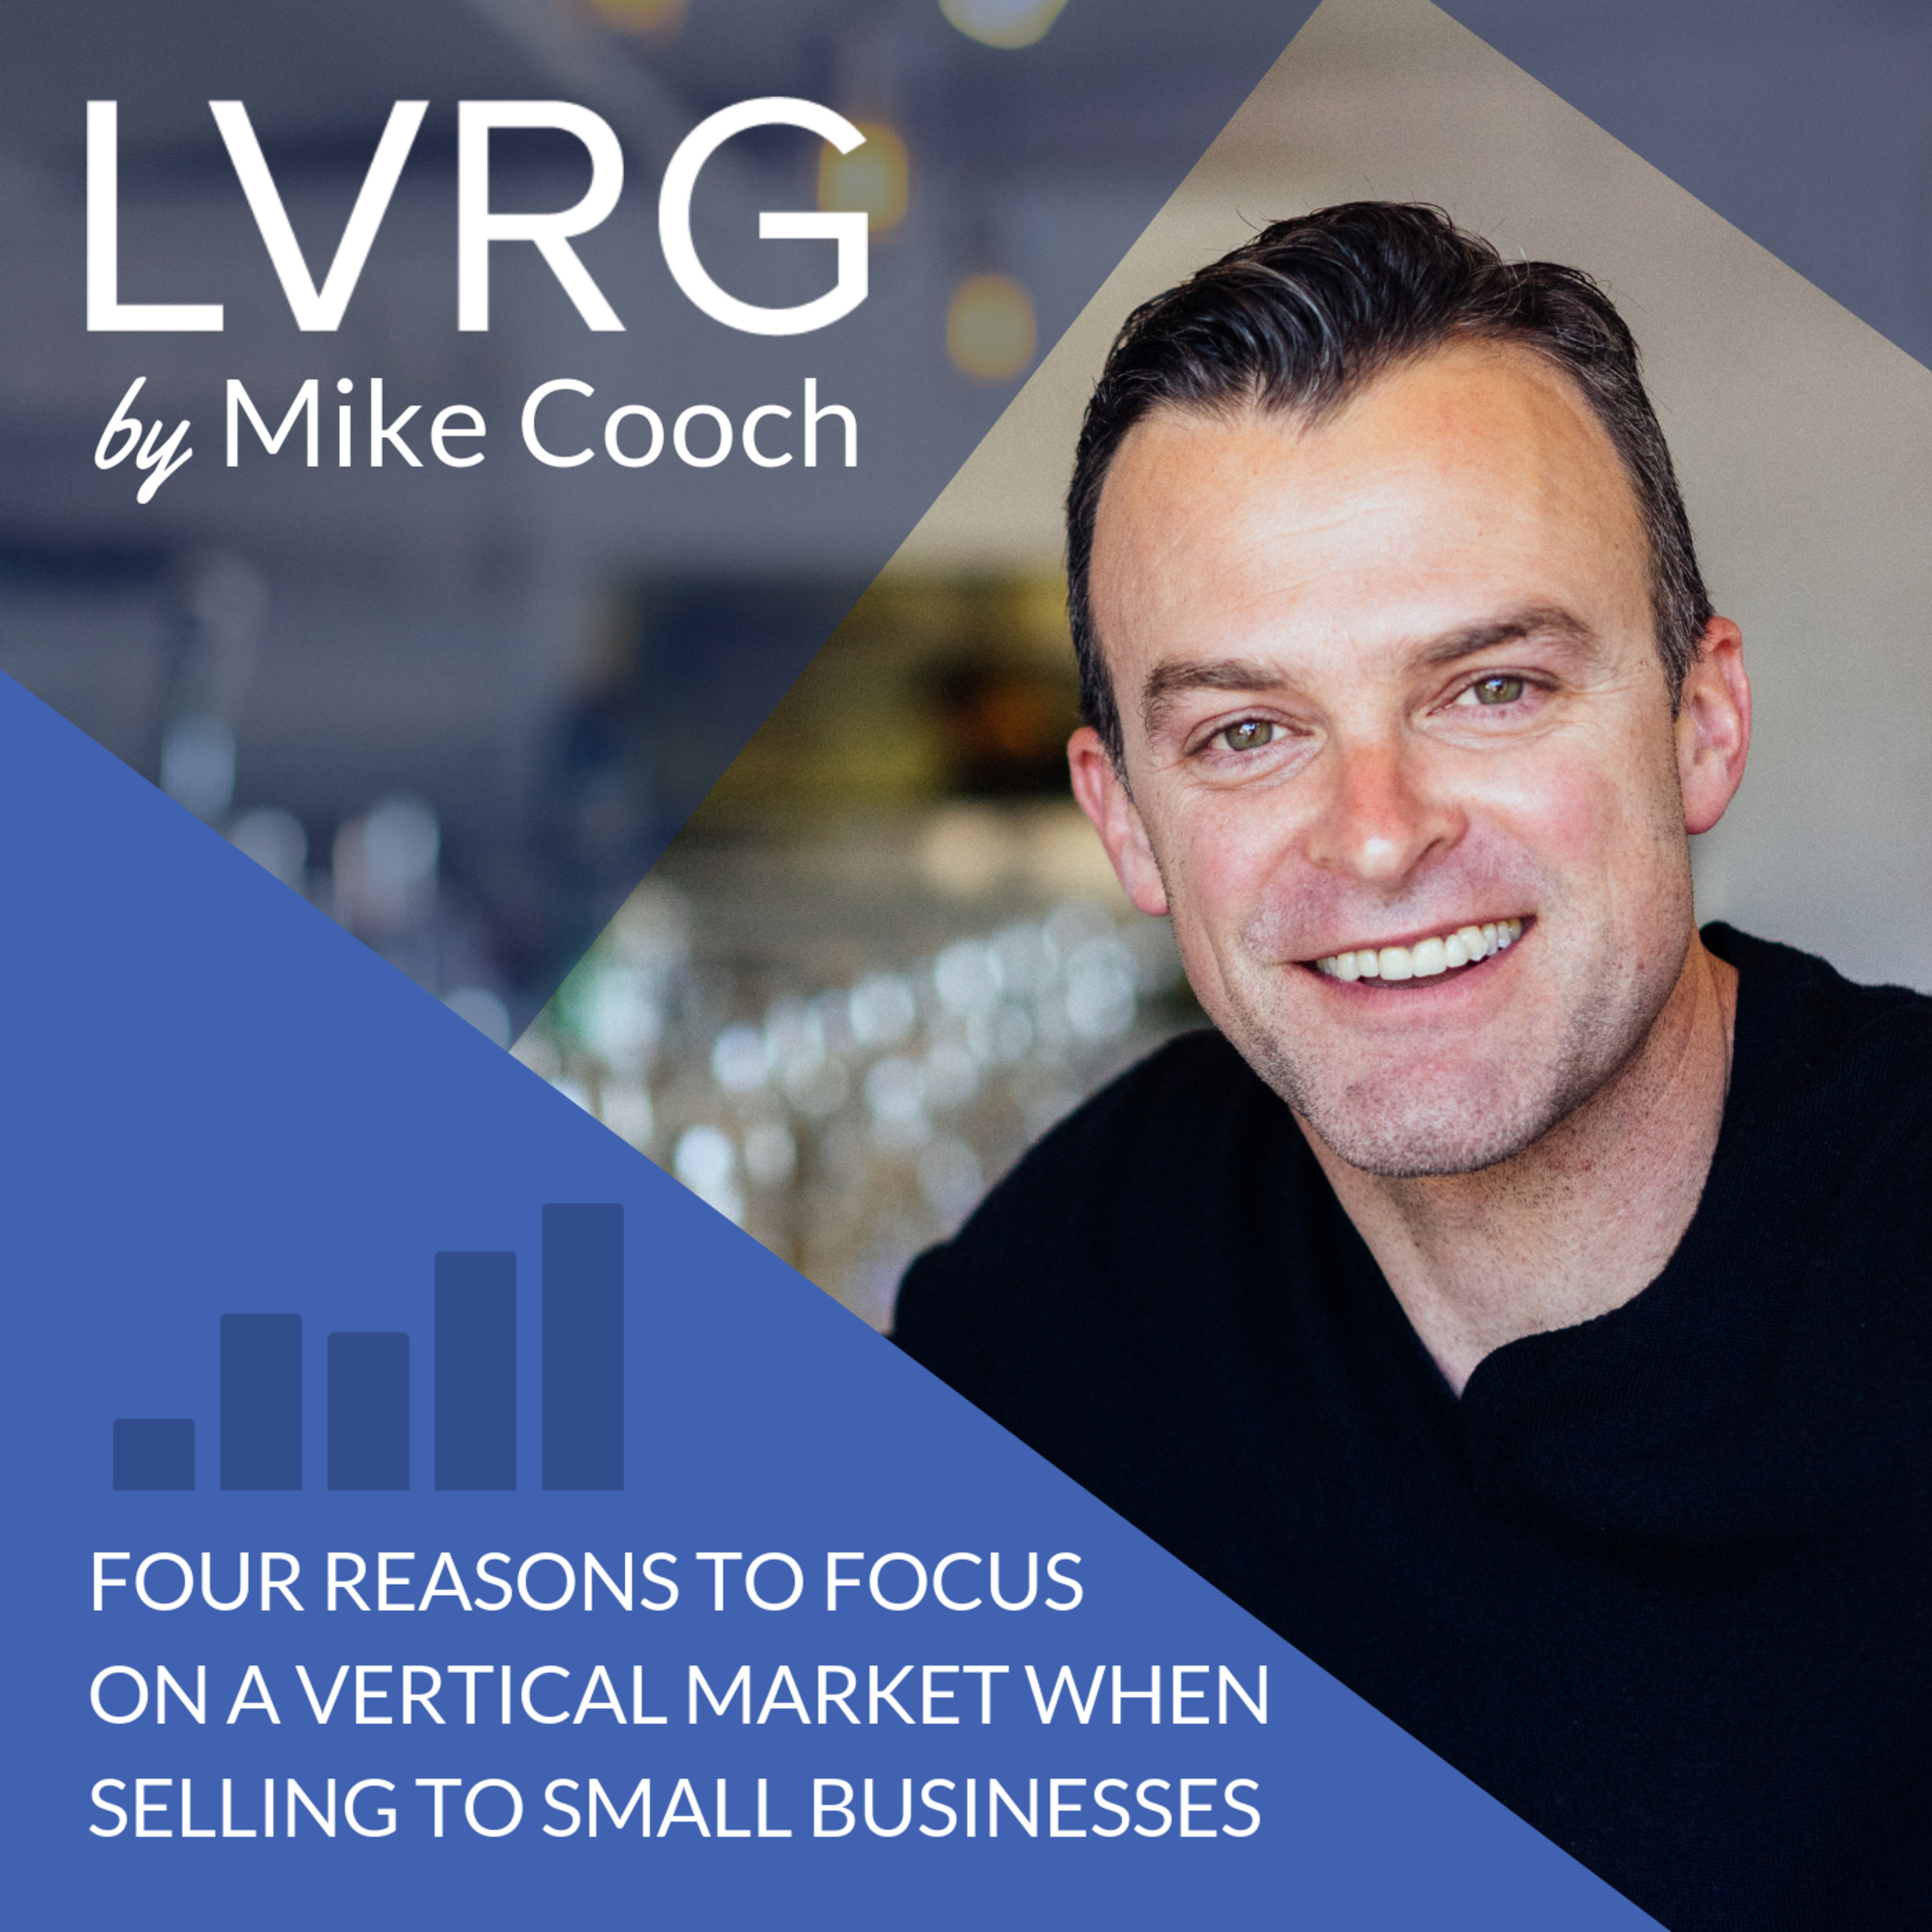 Four Reasons Why You Must Focus On A Vertical When Selling To Small Businesses